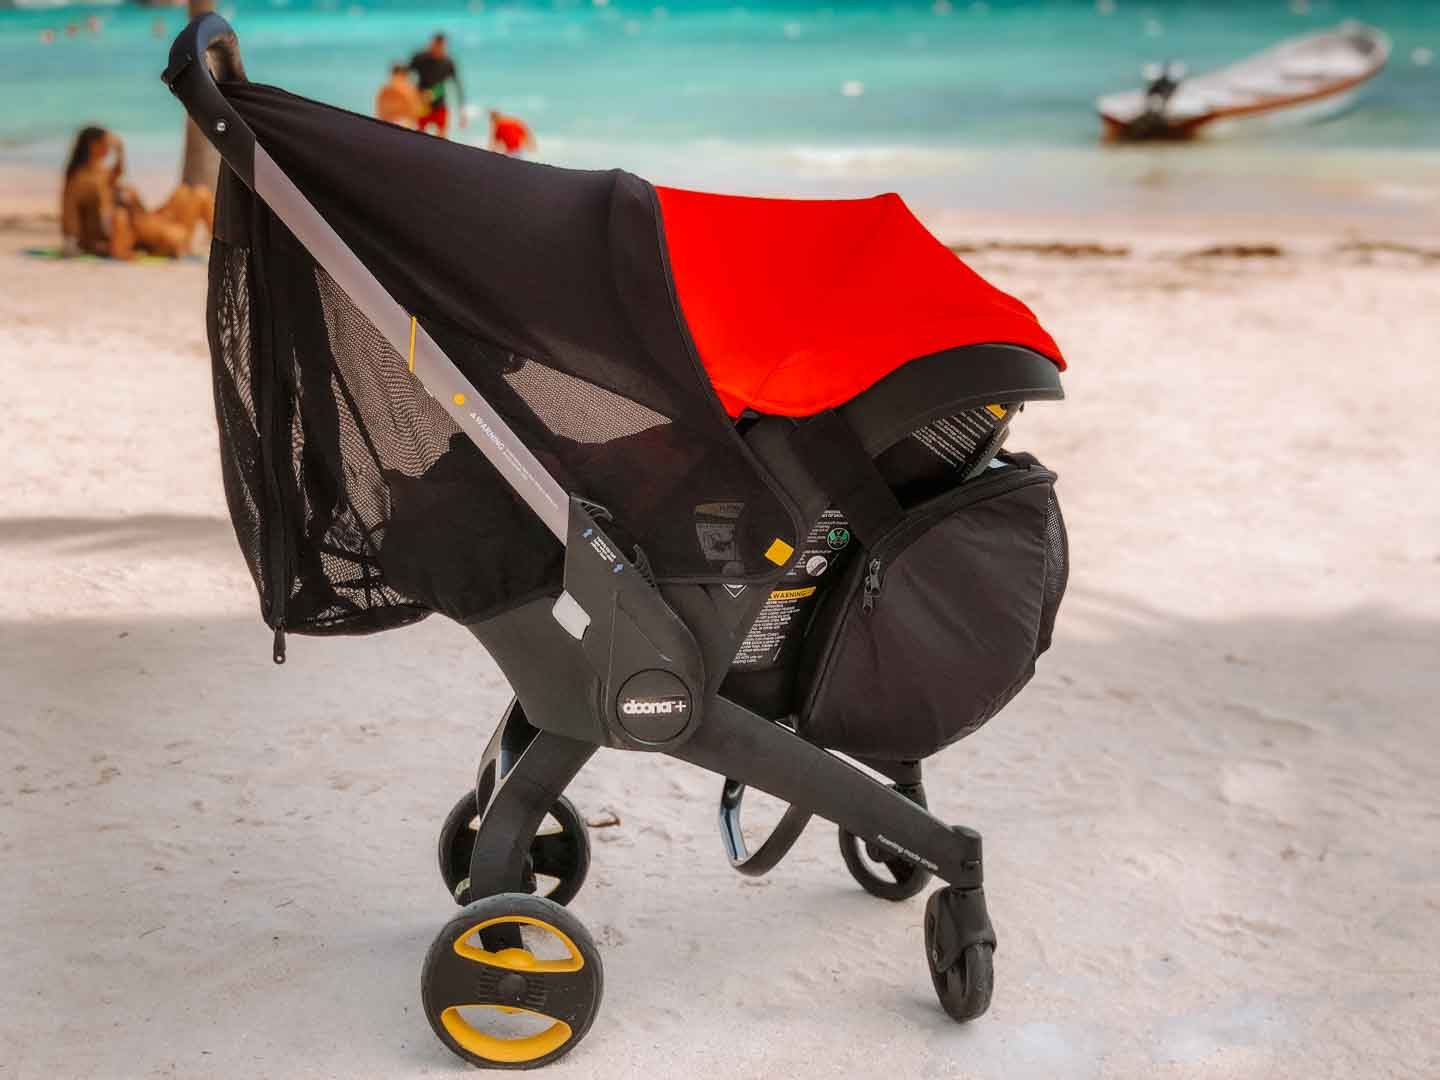 Doona Stroller on the beach